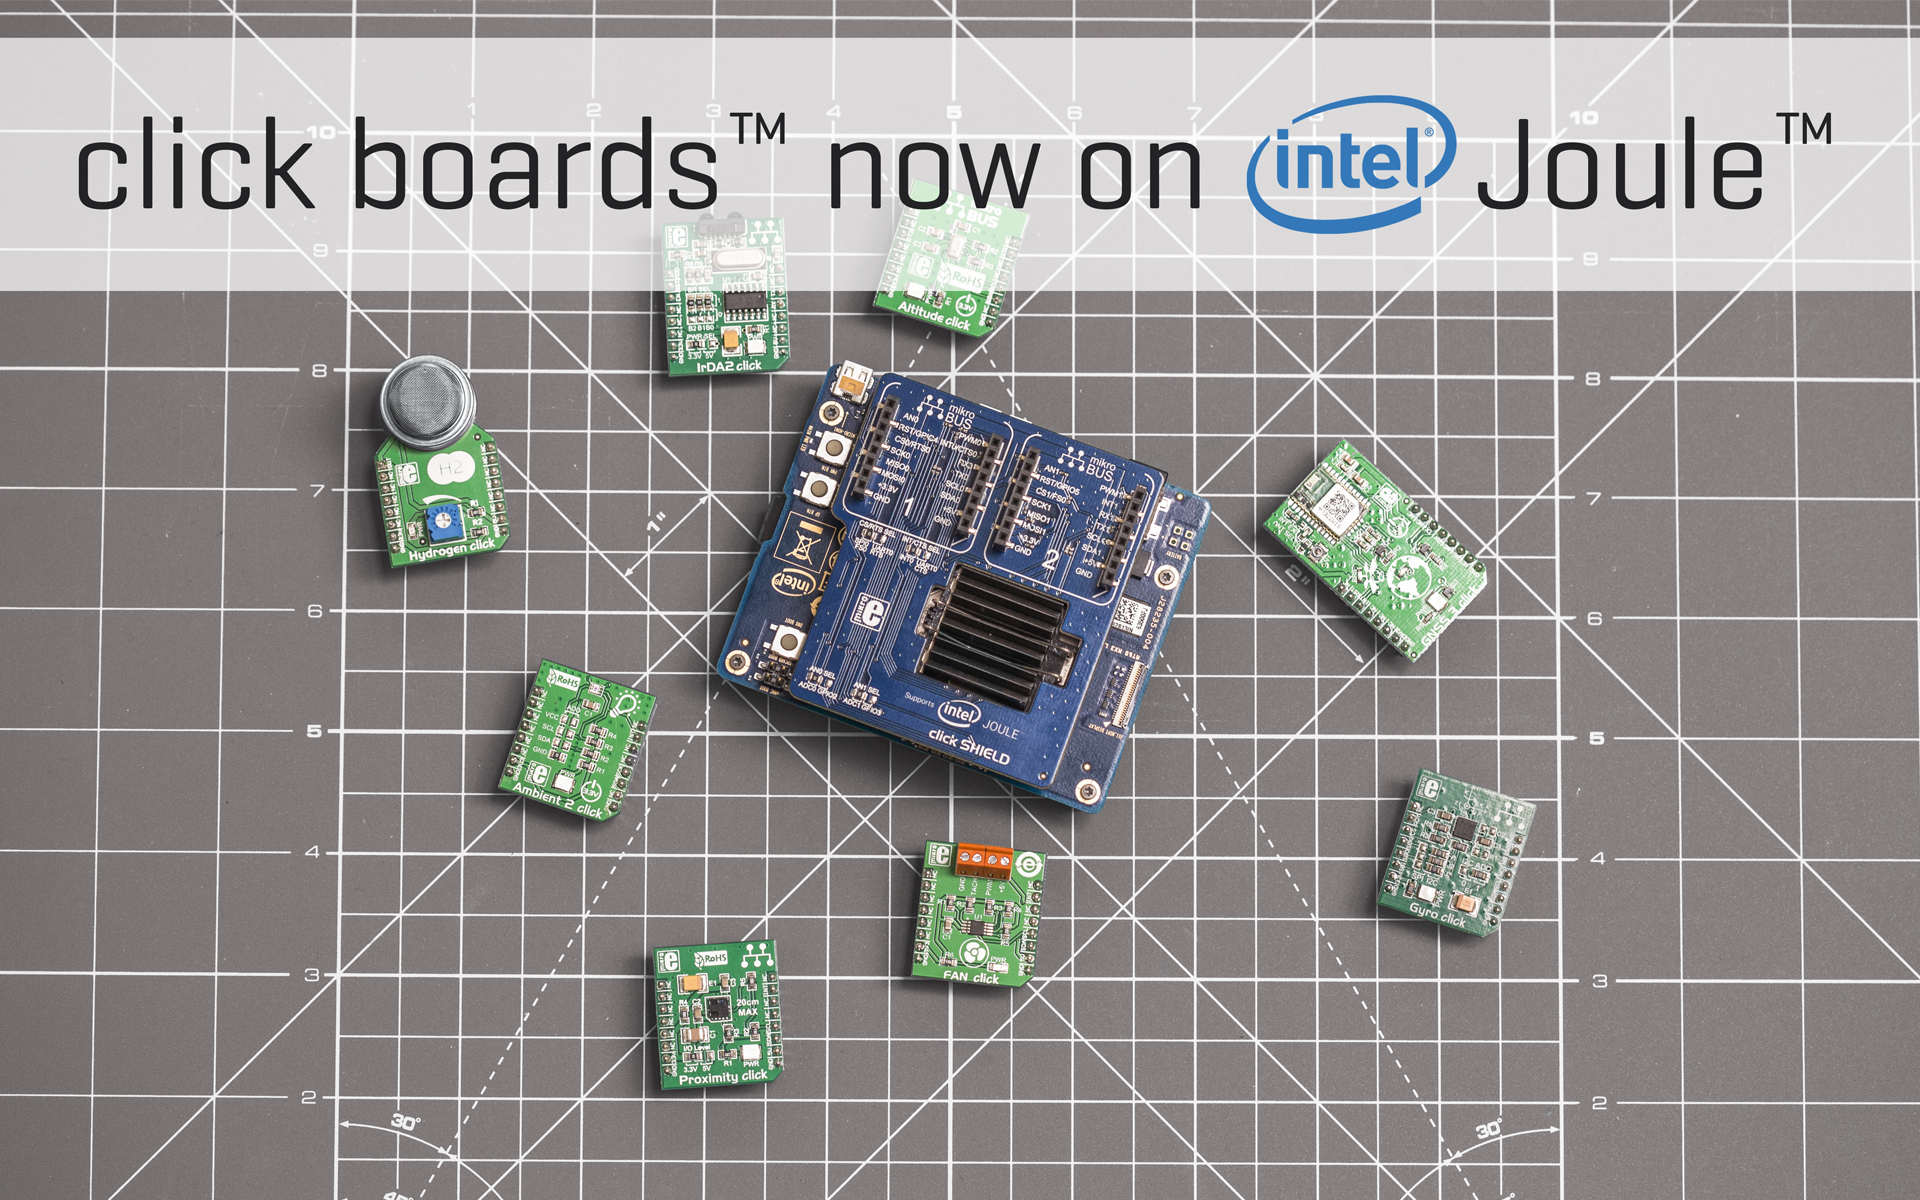 Intel Joule click SHIELD — perfect for IoT development